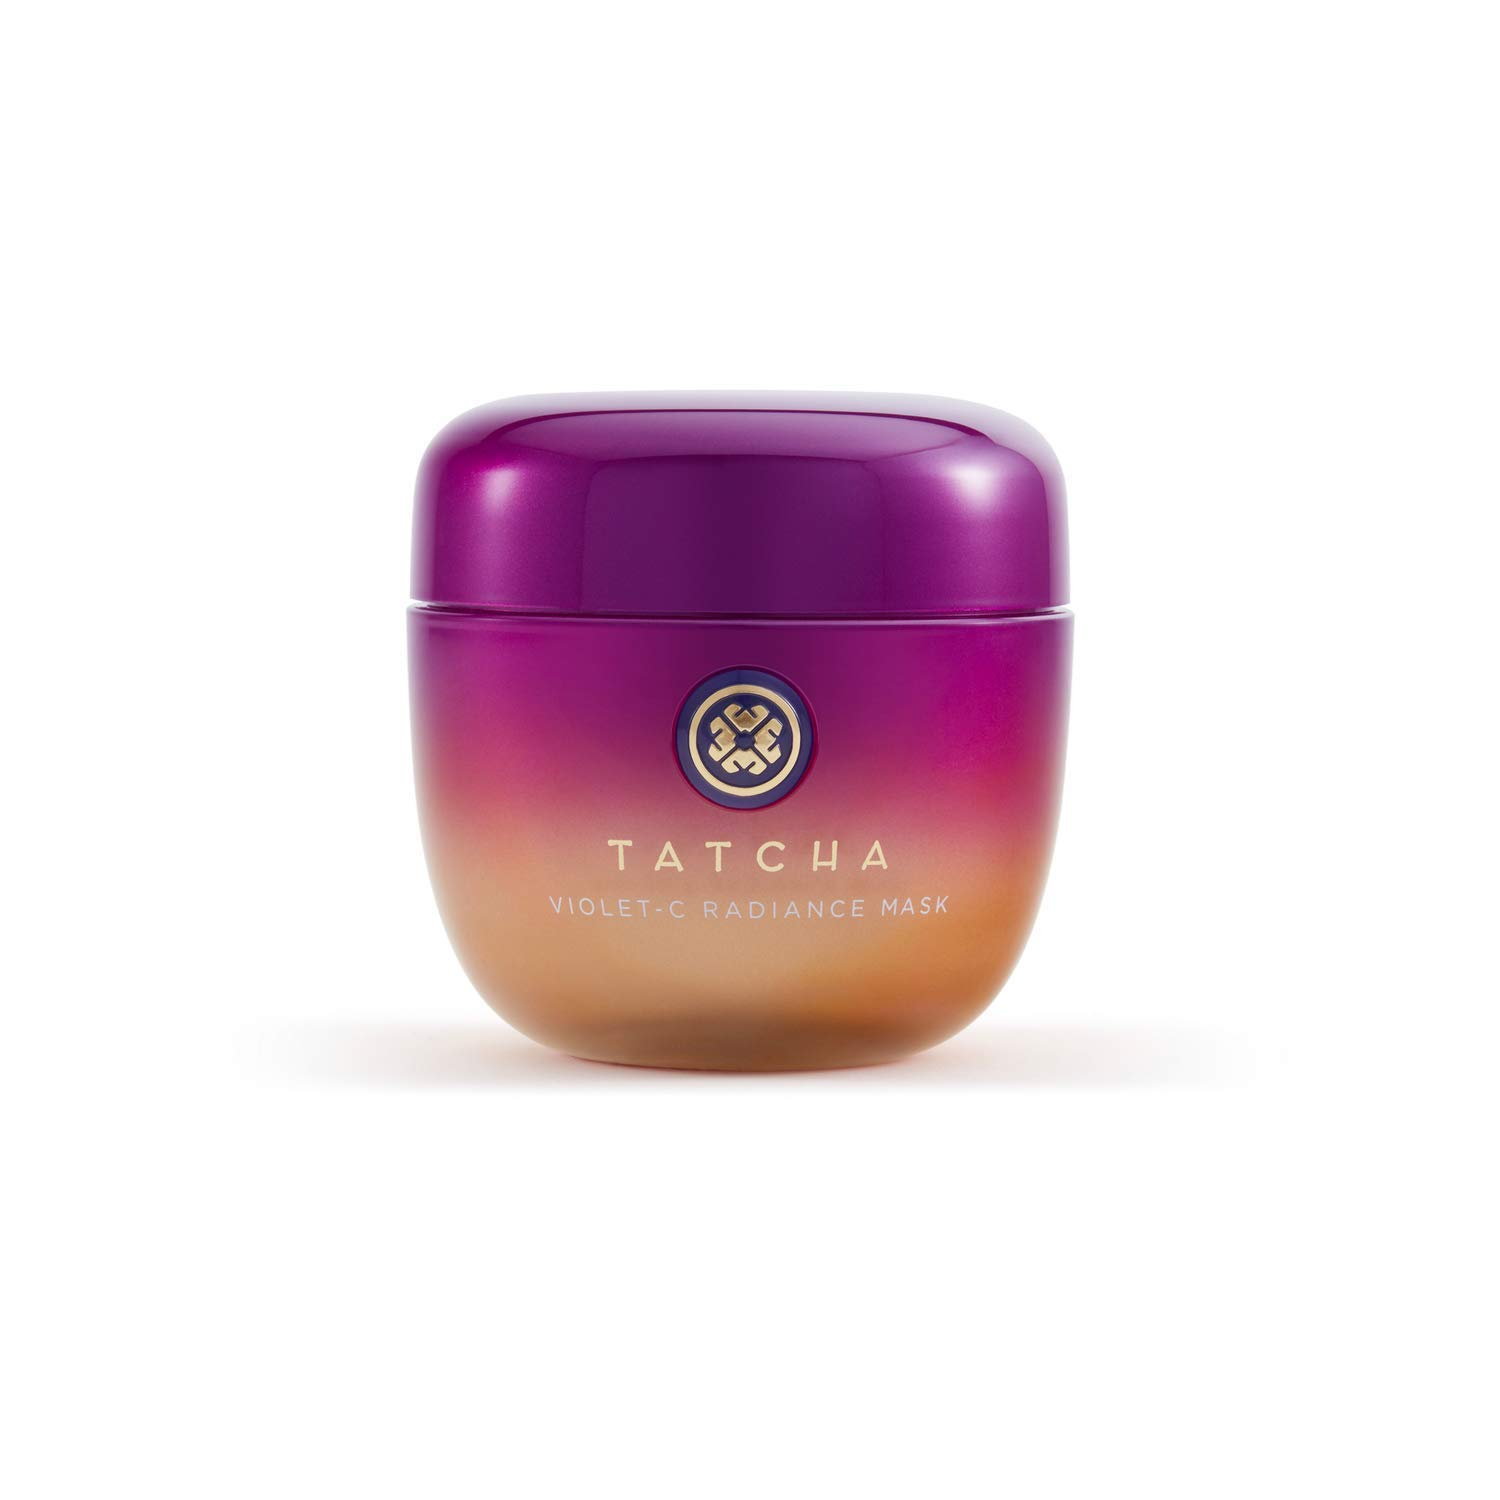 Tatcha The Violet-C Radiance Mask: Creamy Anti-Aging Mask with Vitamin C for Soft, Glowing Skin (50 ml / 1.7 oz)